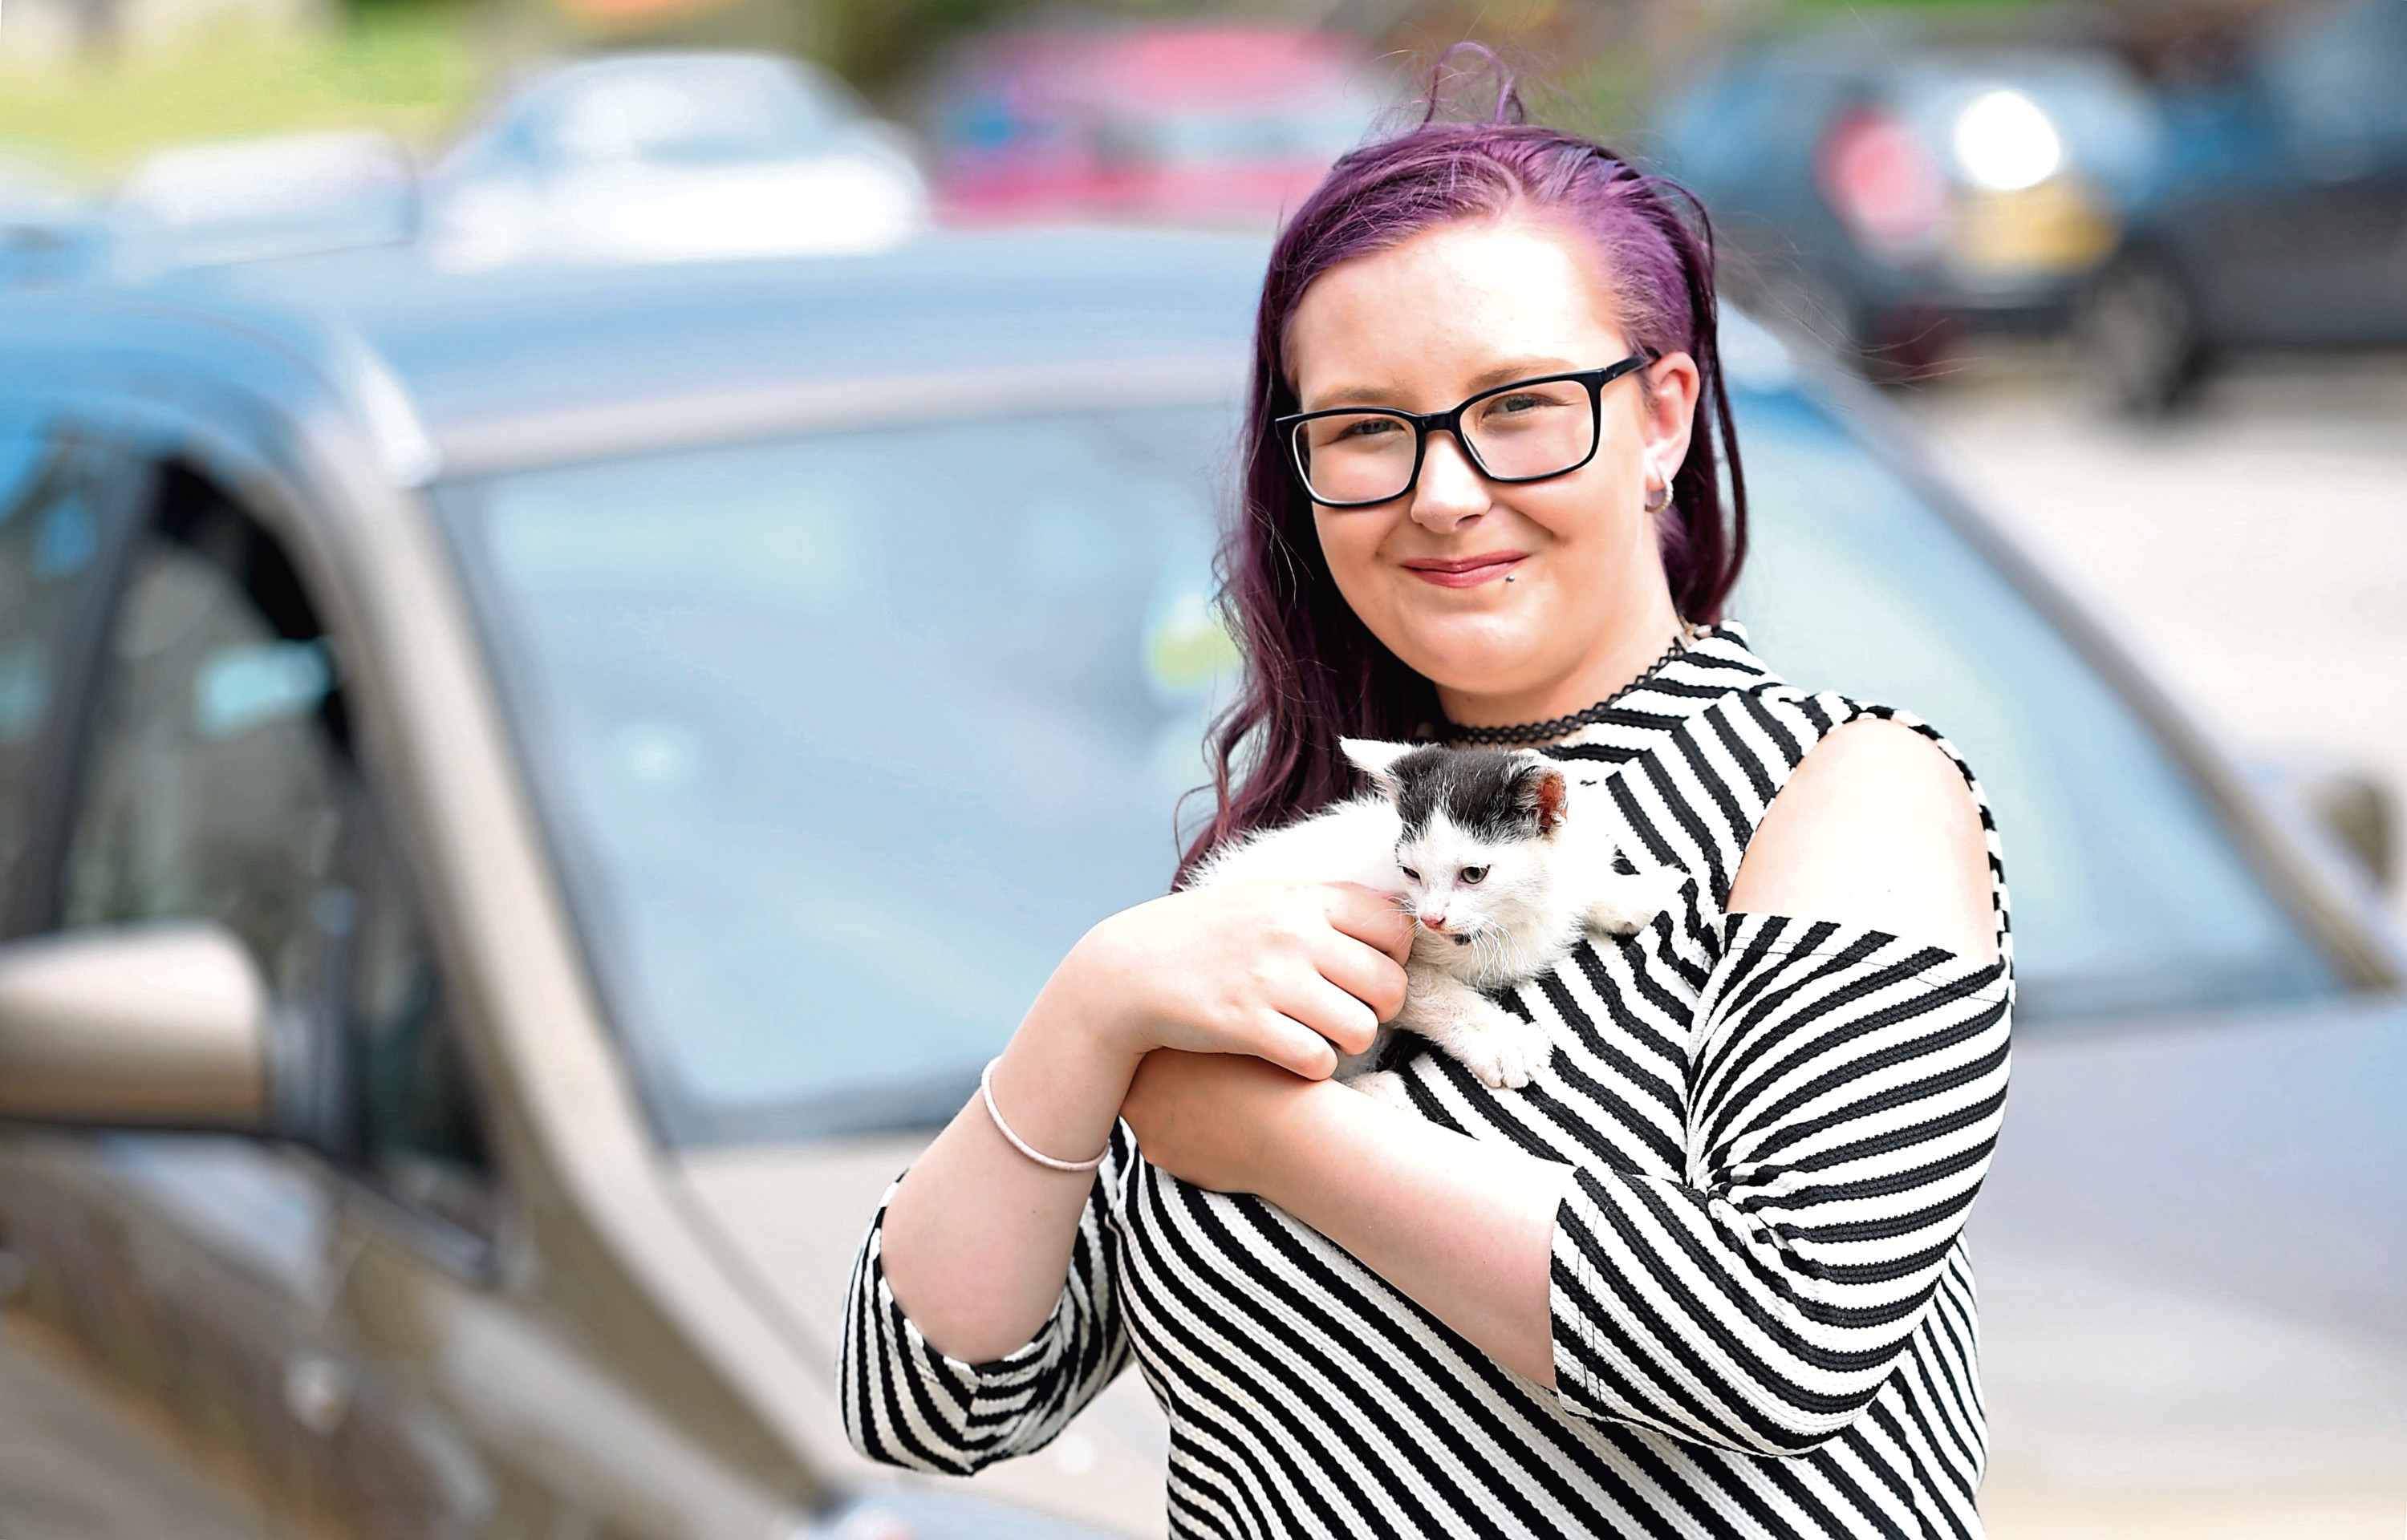 Zoe Duncan with Heidi the kitten which had to be rescued by firefighters after becoming stuck in the dashboard of a car